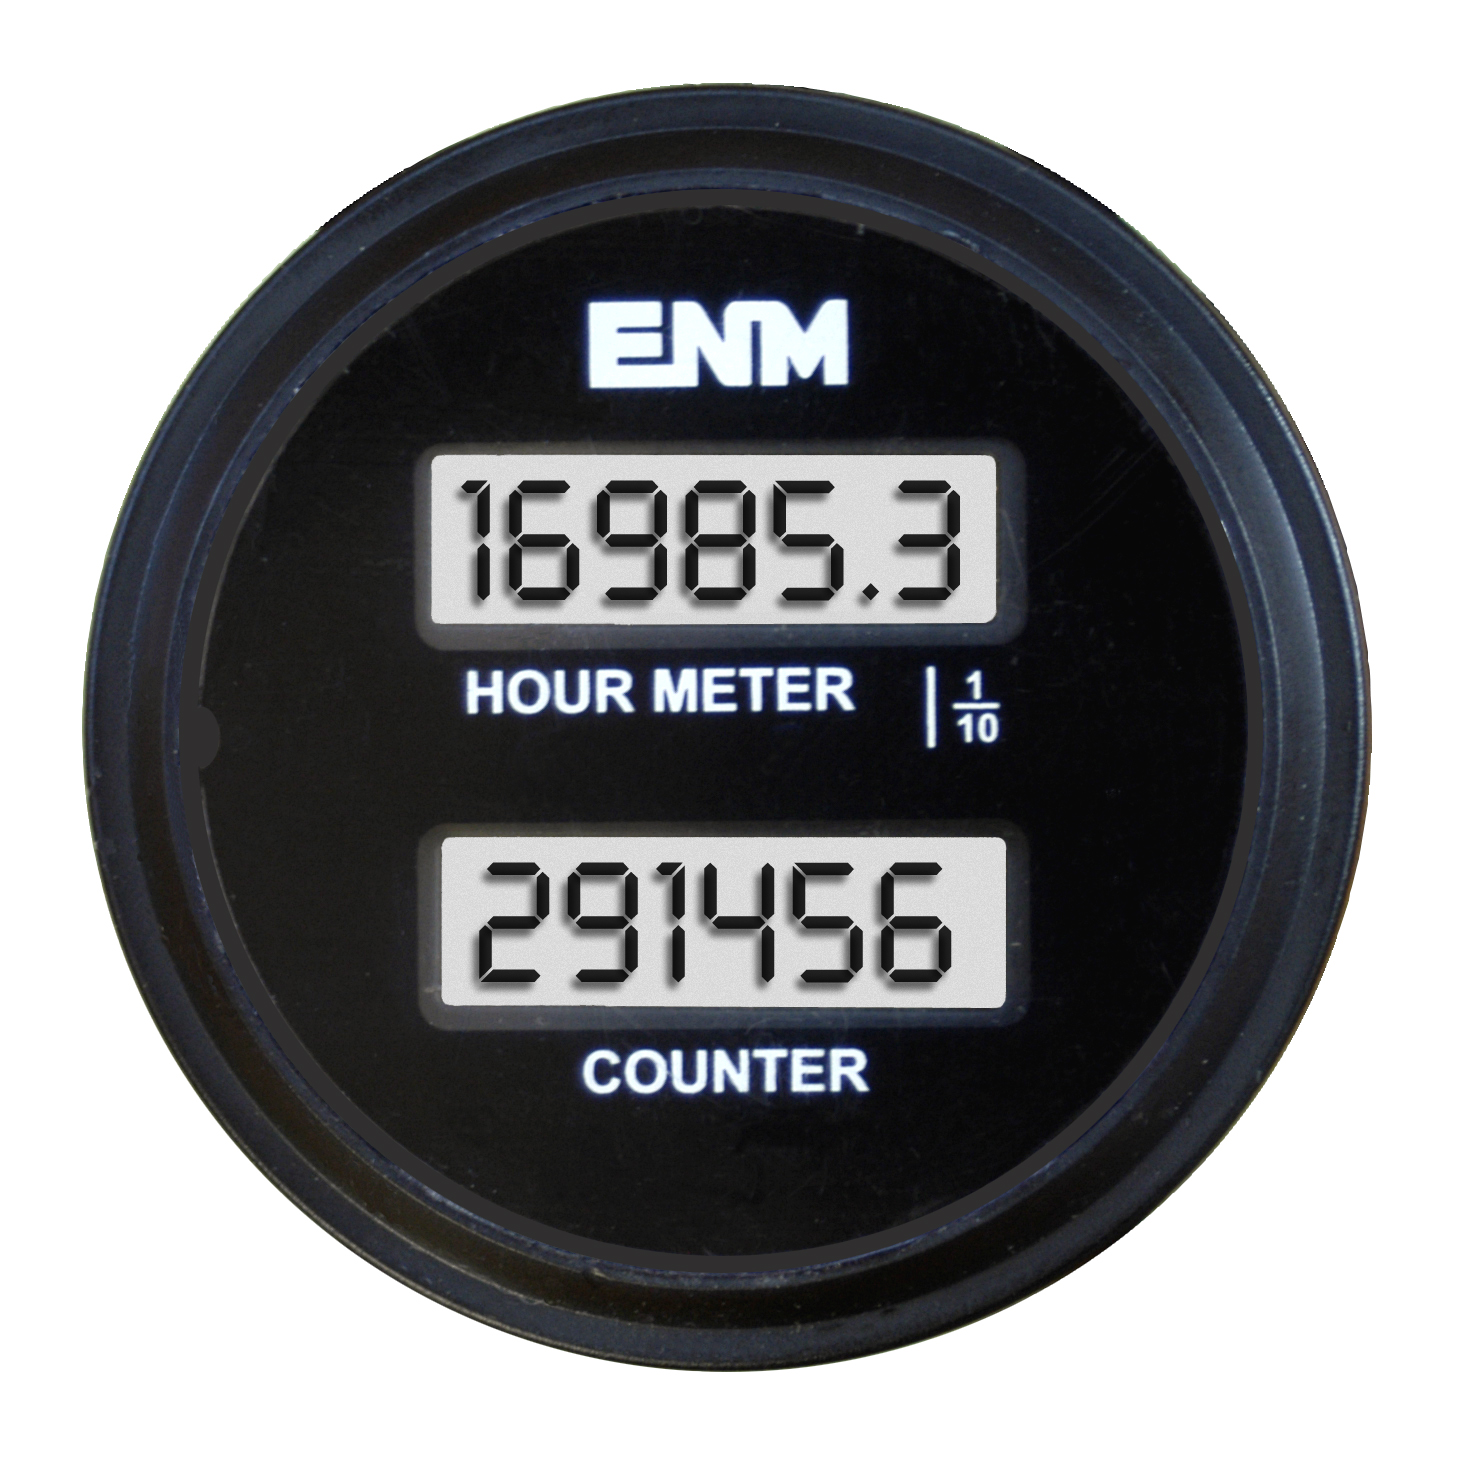 Enm Company Chicago Illinois Il 60646 Vibration Impulse Counter Product Information